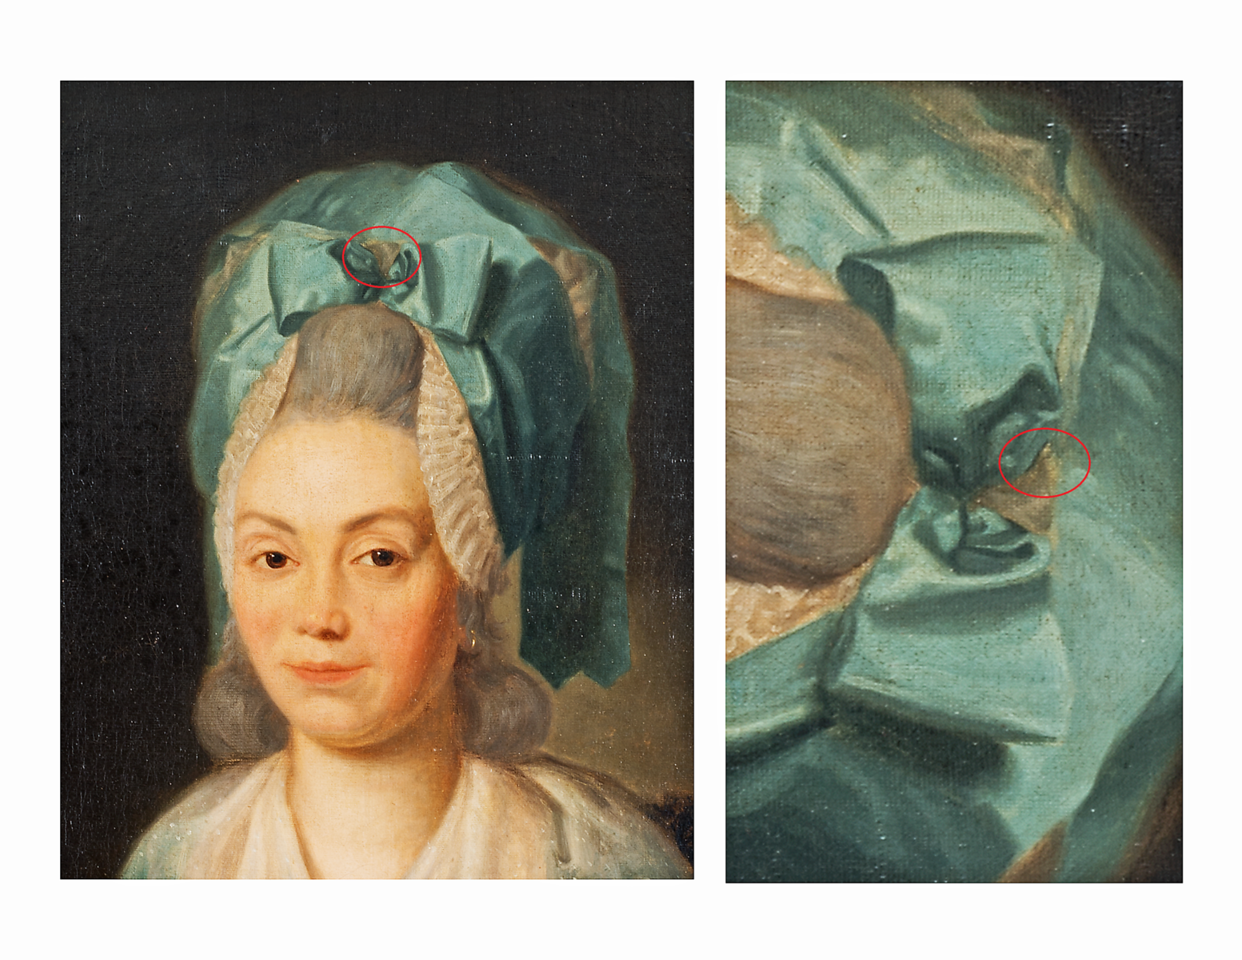 (Fig. 1a)  This image shows a dove in the middle of the Marie Anne Blanchet's hair disguised as a tuft of hair. When the bow is turned 90 degrees to the right a carnival like mask appears from the folds of fabric. Another aspect of Goya's bizarre imagination is that the eyes of the dove which are represented by capital A's morph into the facial features of a devilish creature adjacent to the dove. Who, other than Goya, would depict the dove (which represents the holy spirit) sharing the same facial features as the devil?